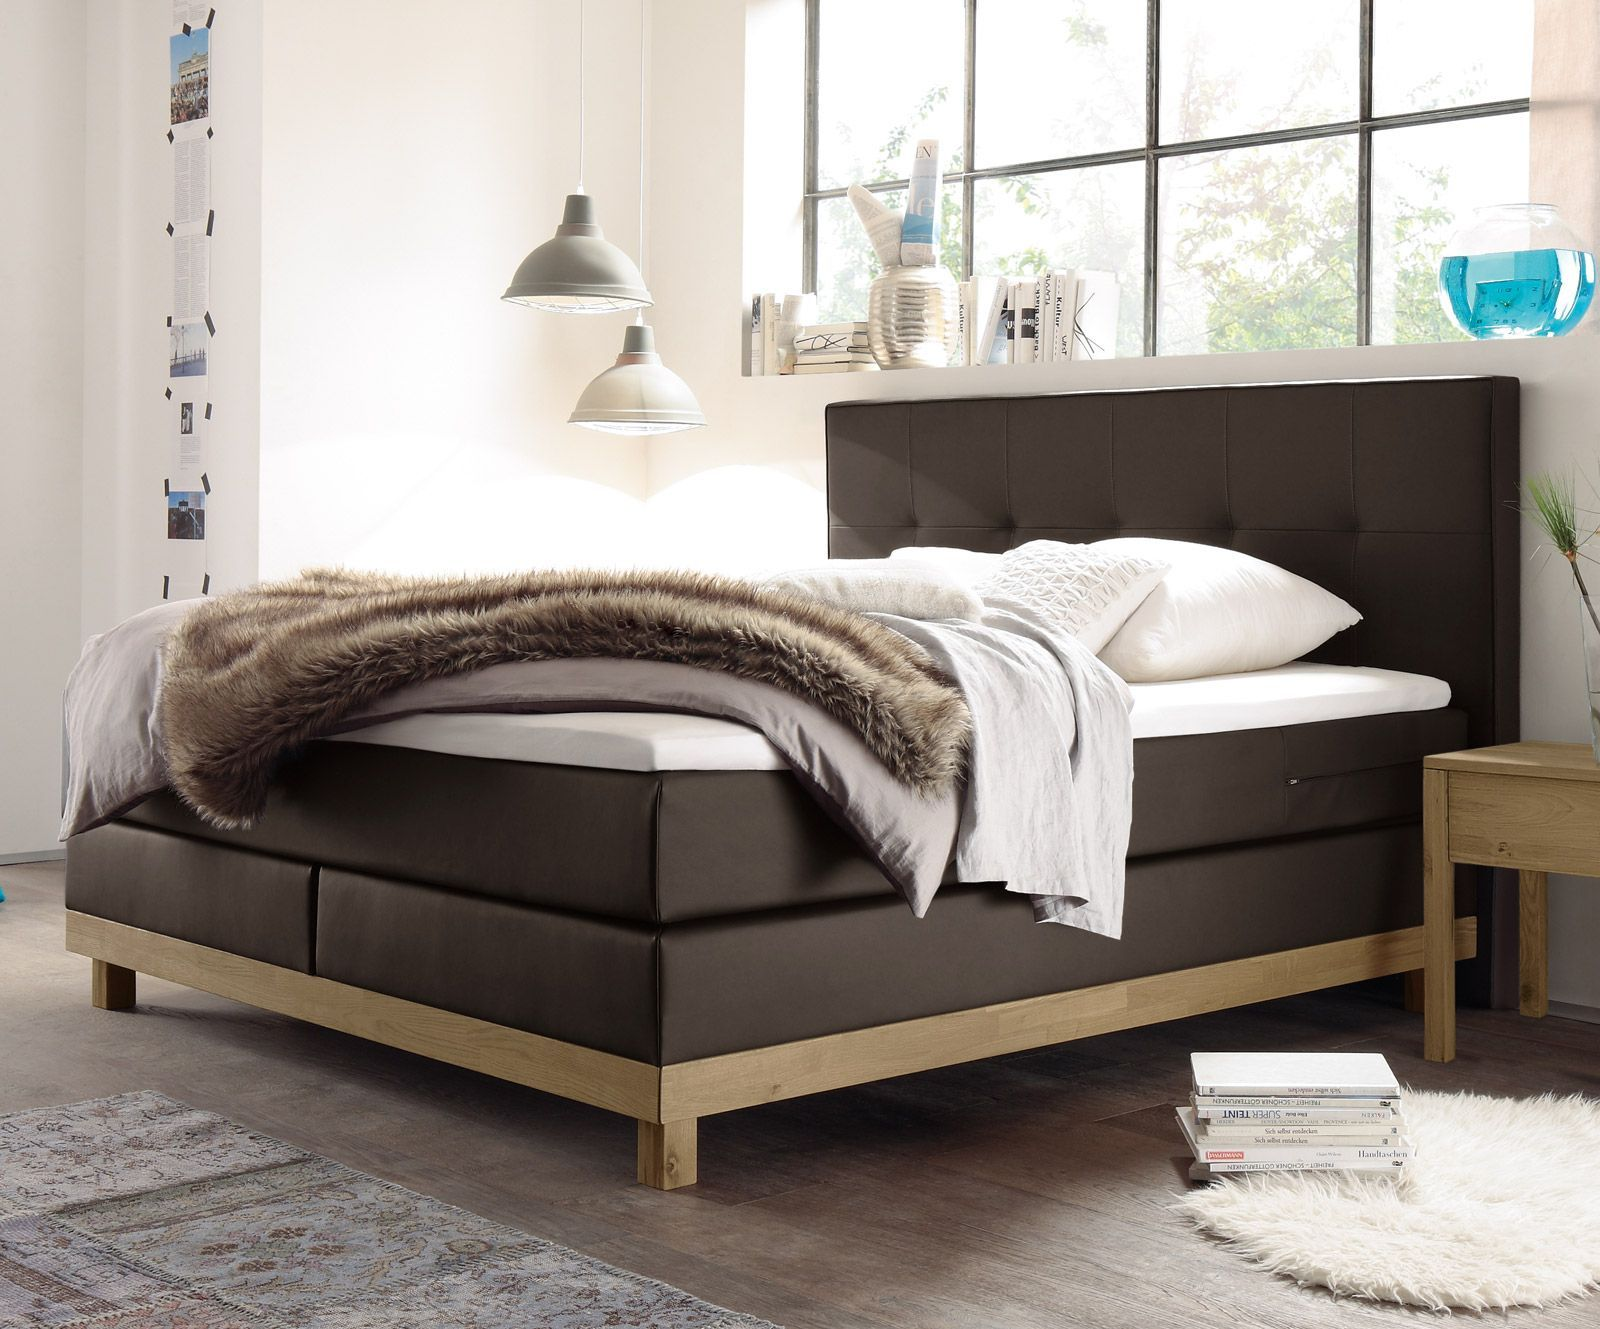 boxspringbett in eiche und kunstleder schnell lieferbar diori. Black Bedroom Furniture Sets. Home Design Ideas